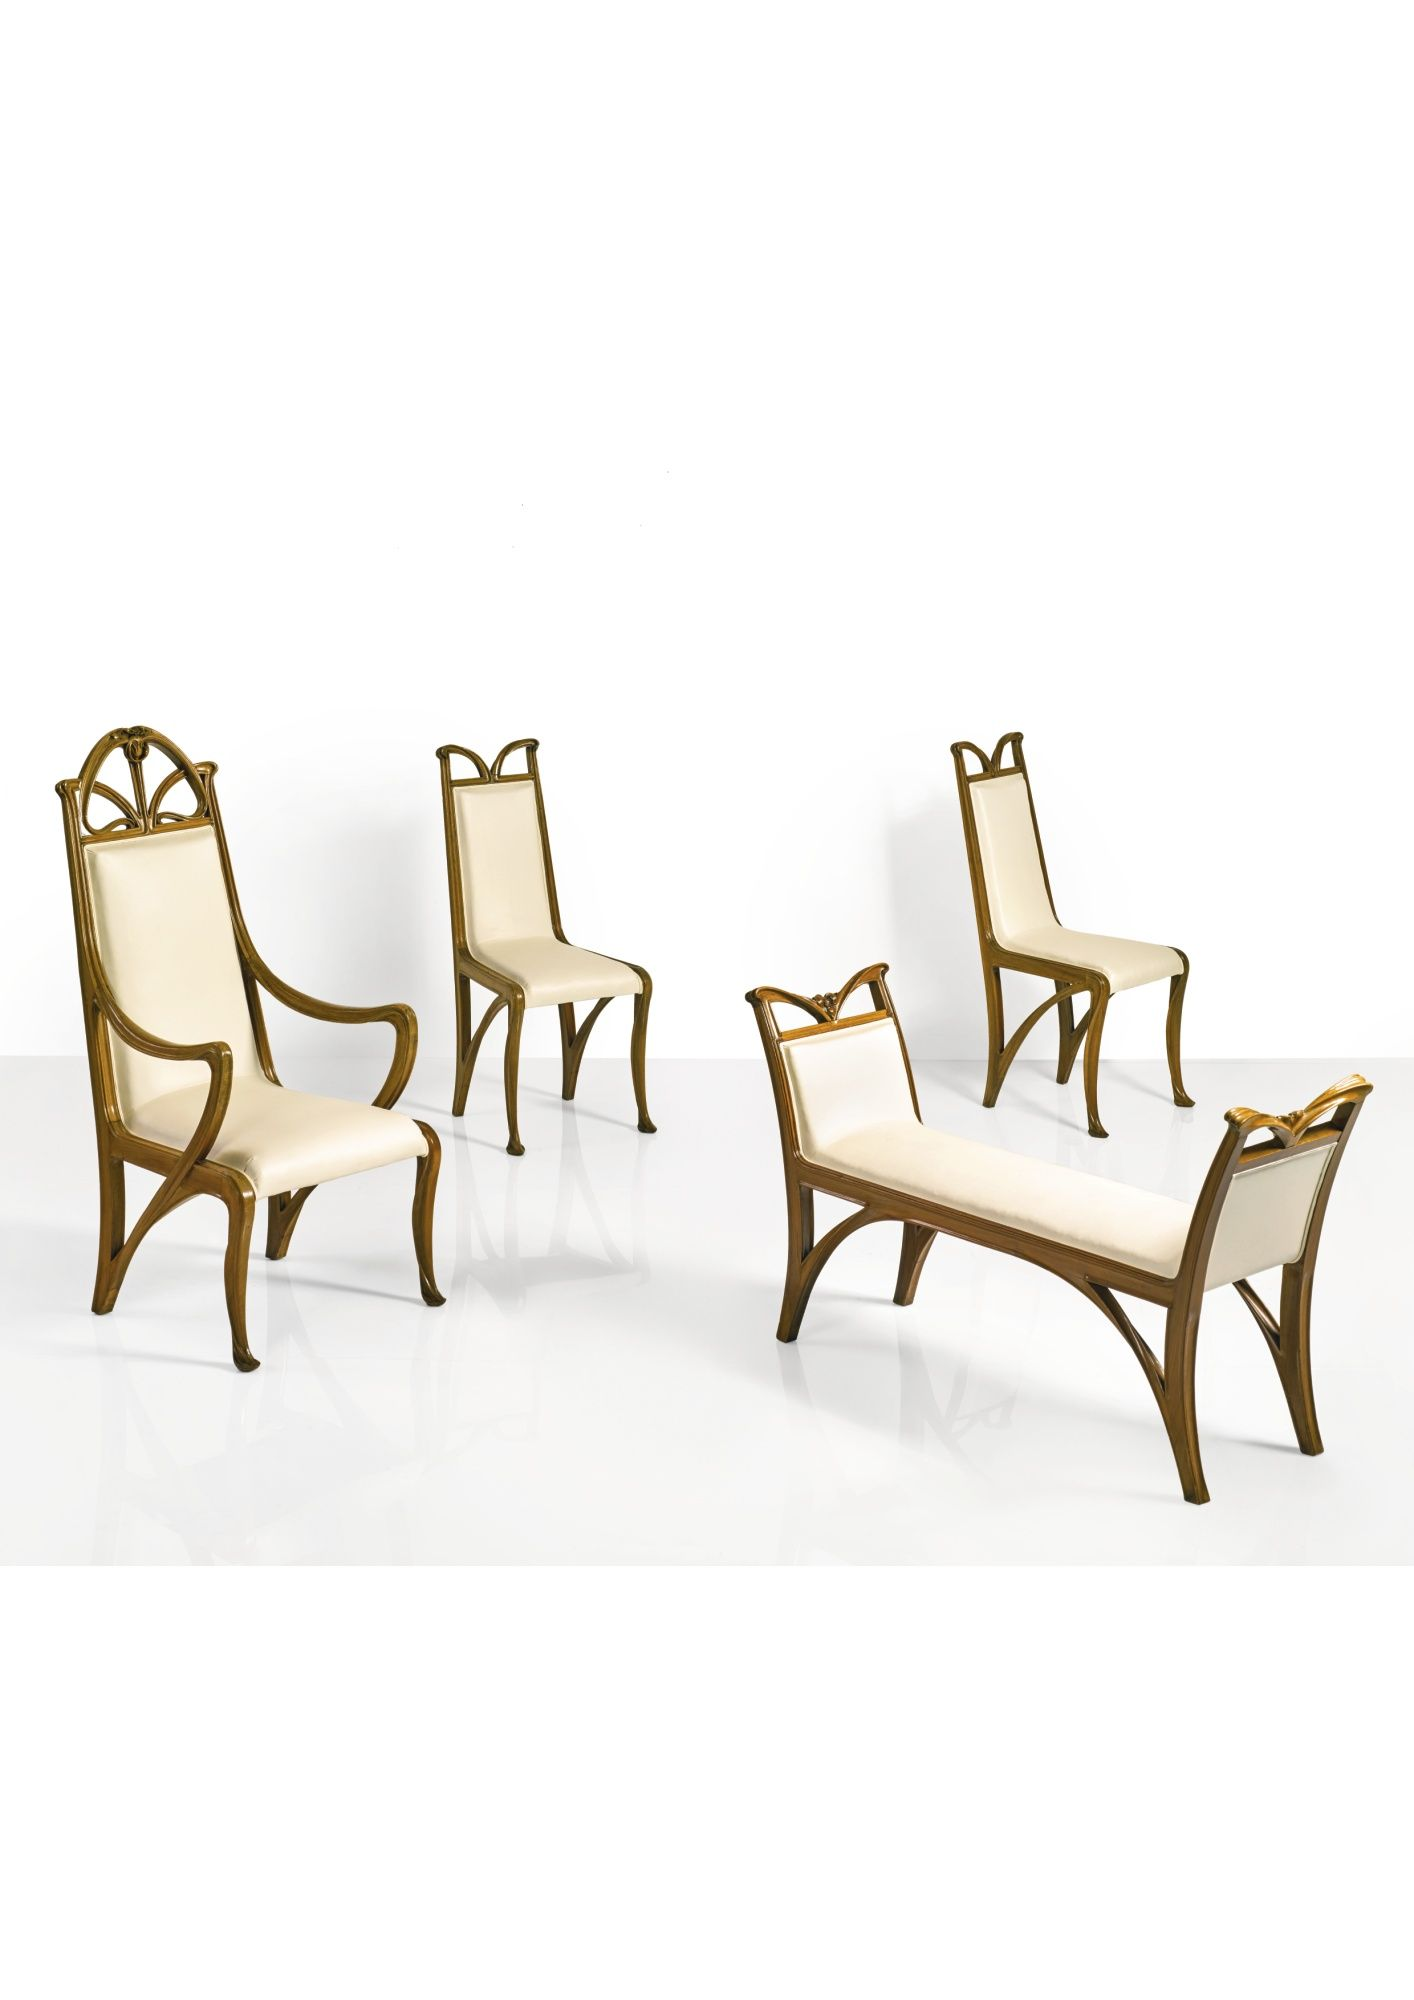 modern art nouveau furniture. Louis Majorelle ARMCHAIR AND PAIR OF CHAIRS Walnut And Fabric Upholstery · Art Nouveau Modern Furniture E